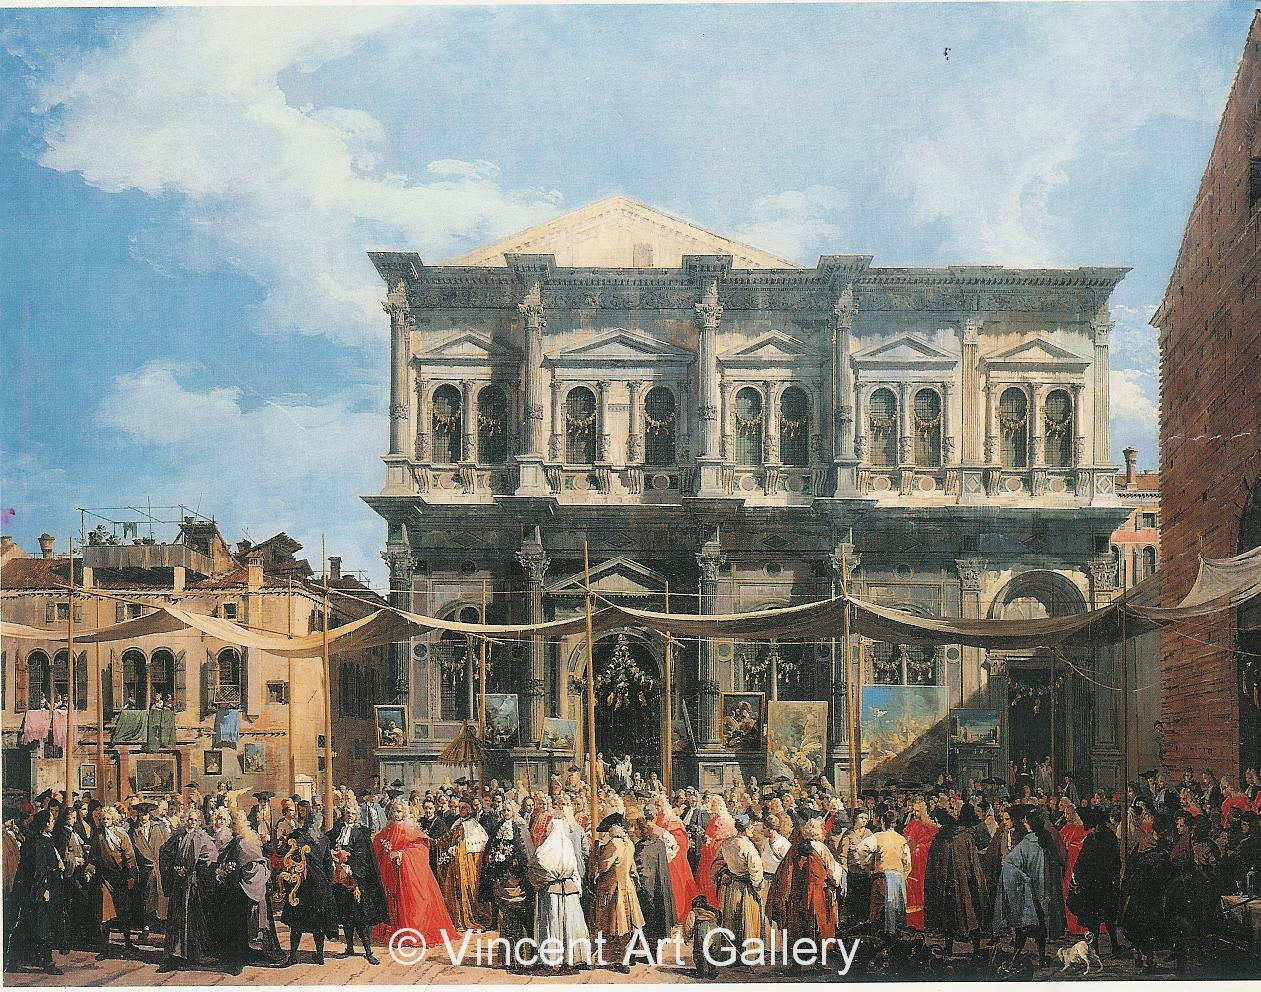 A1018, CANALETTO, Feast of San Rocco